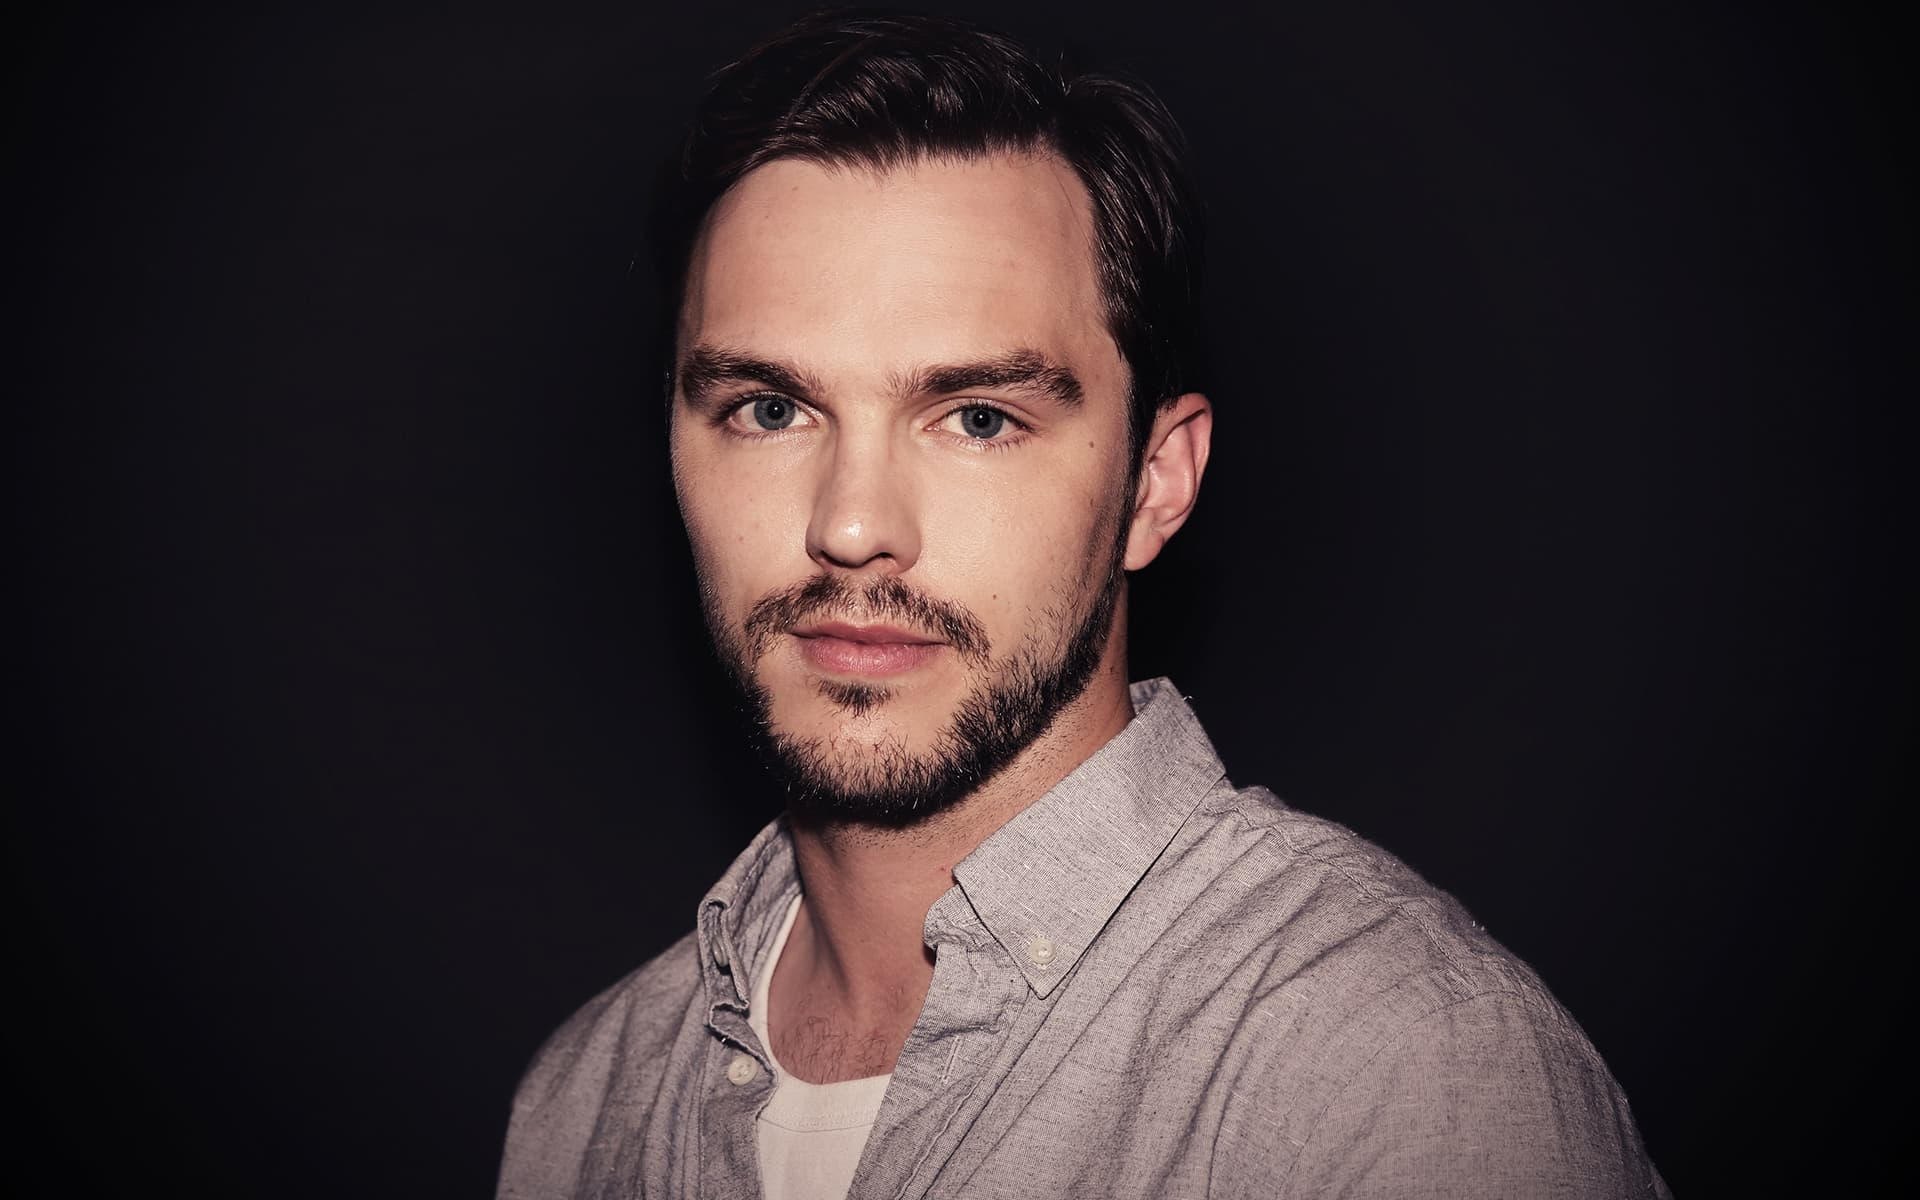 nicholas hoult wallpaper background - photo #6